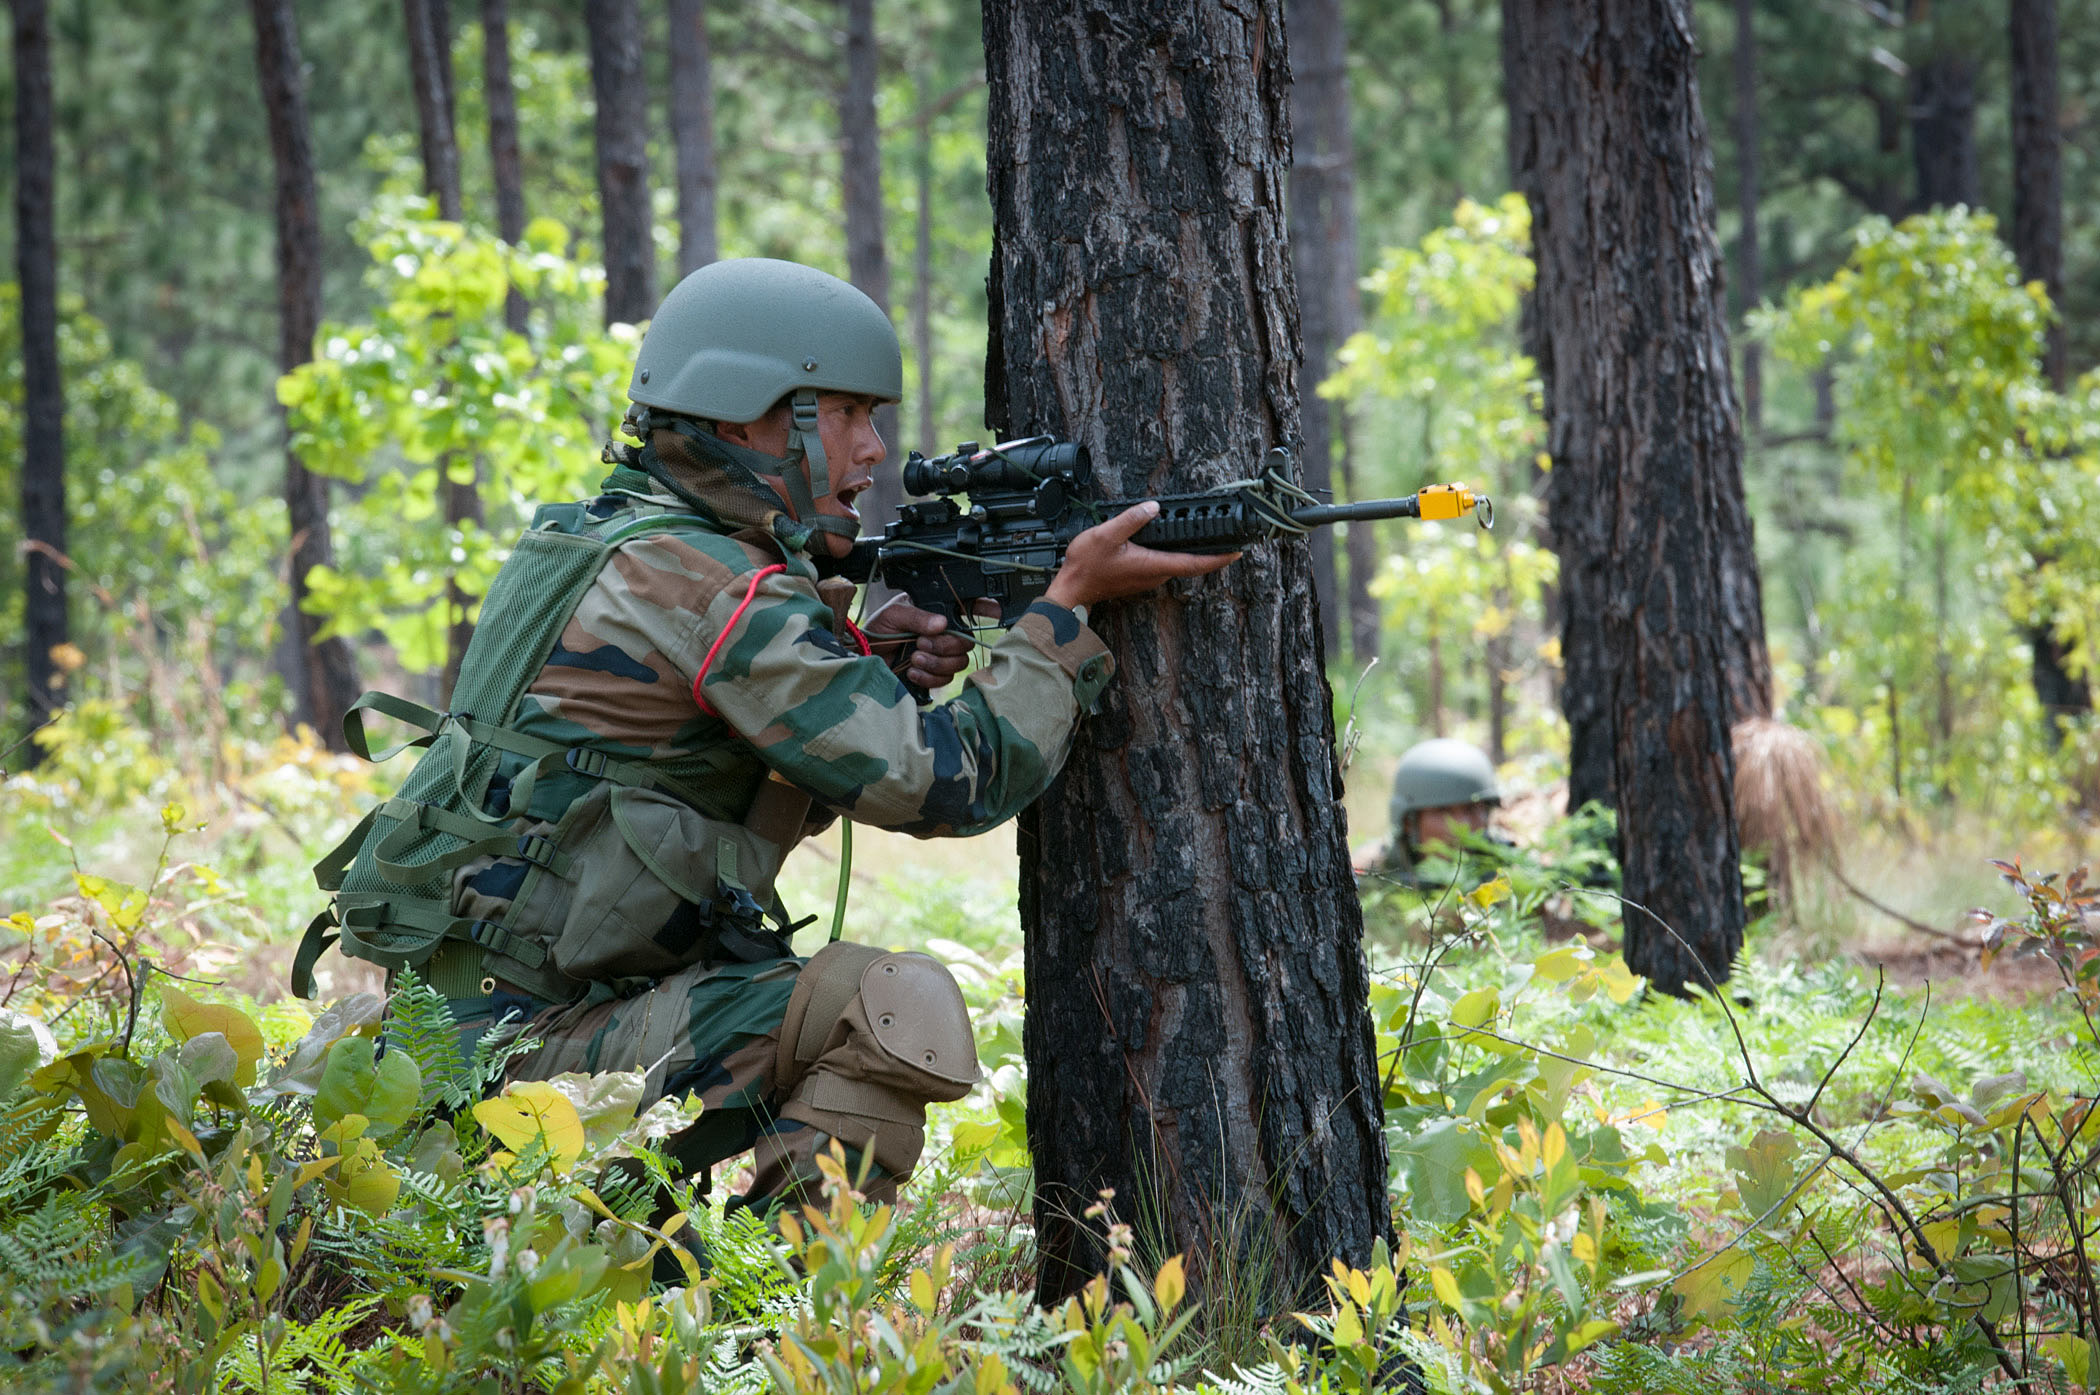 An Indian Army soldier with the 99th Mountain Brigade fires at role-playing insurgents during bilateral training with paratroopers of the 82nd Airborne Division's 1st Brigade Combat Team May 8, 2013, at Fort Bragg, N.C.  The soldiers were participating in Yudh Abhyas, an annual training event between the Indian Army and United States Army Pacific to improve the ability of the forces involved to respond to a wide range of contingencies.  (U.S. Army photo by Sgt. Michael J. MacLeod)